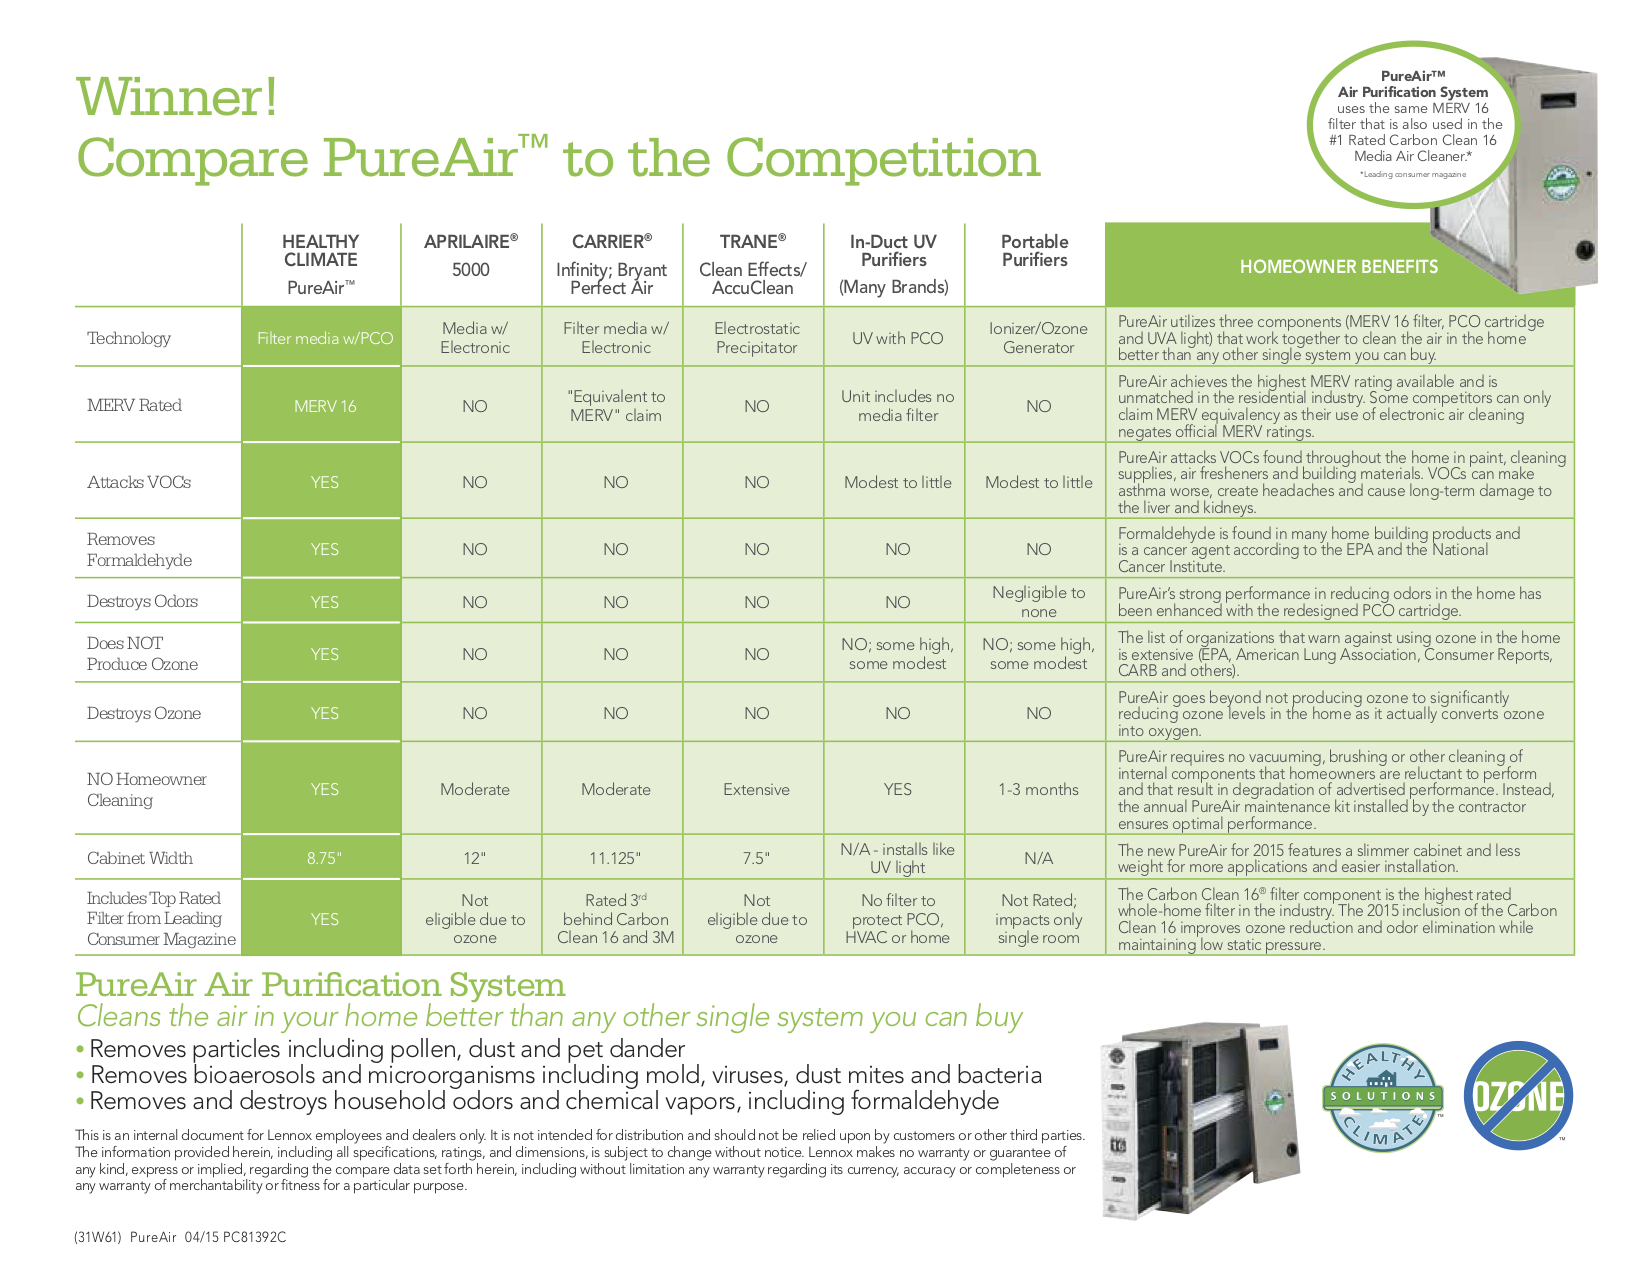 PureAir Air Purification Systems Comparison Chart-Pinnacle HVAC- Heating, Ventilation